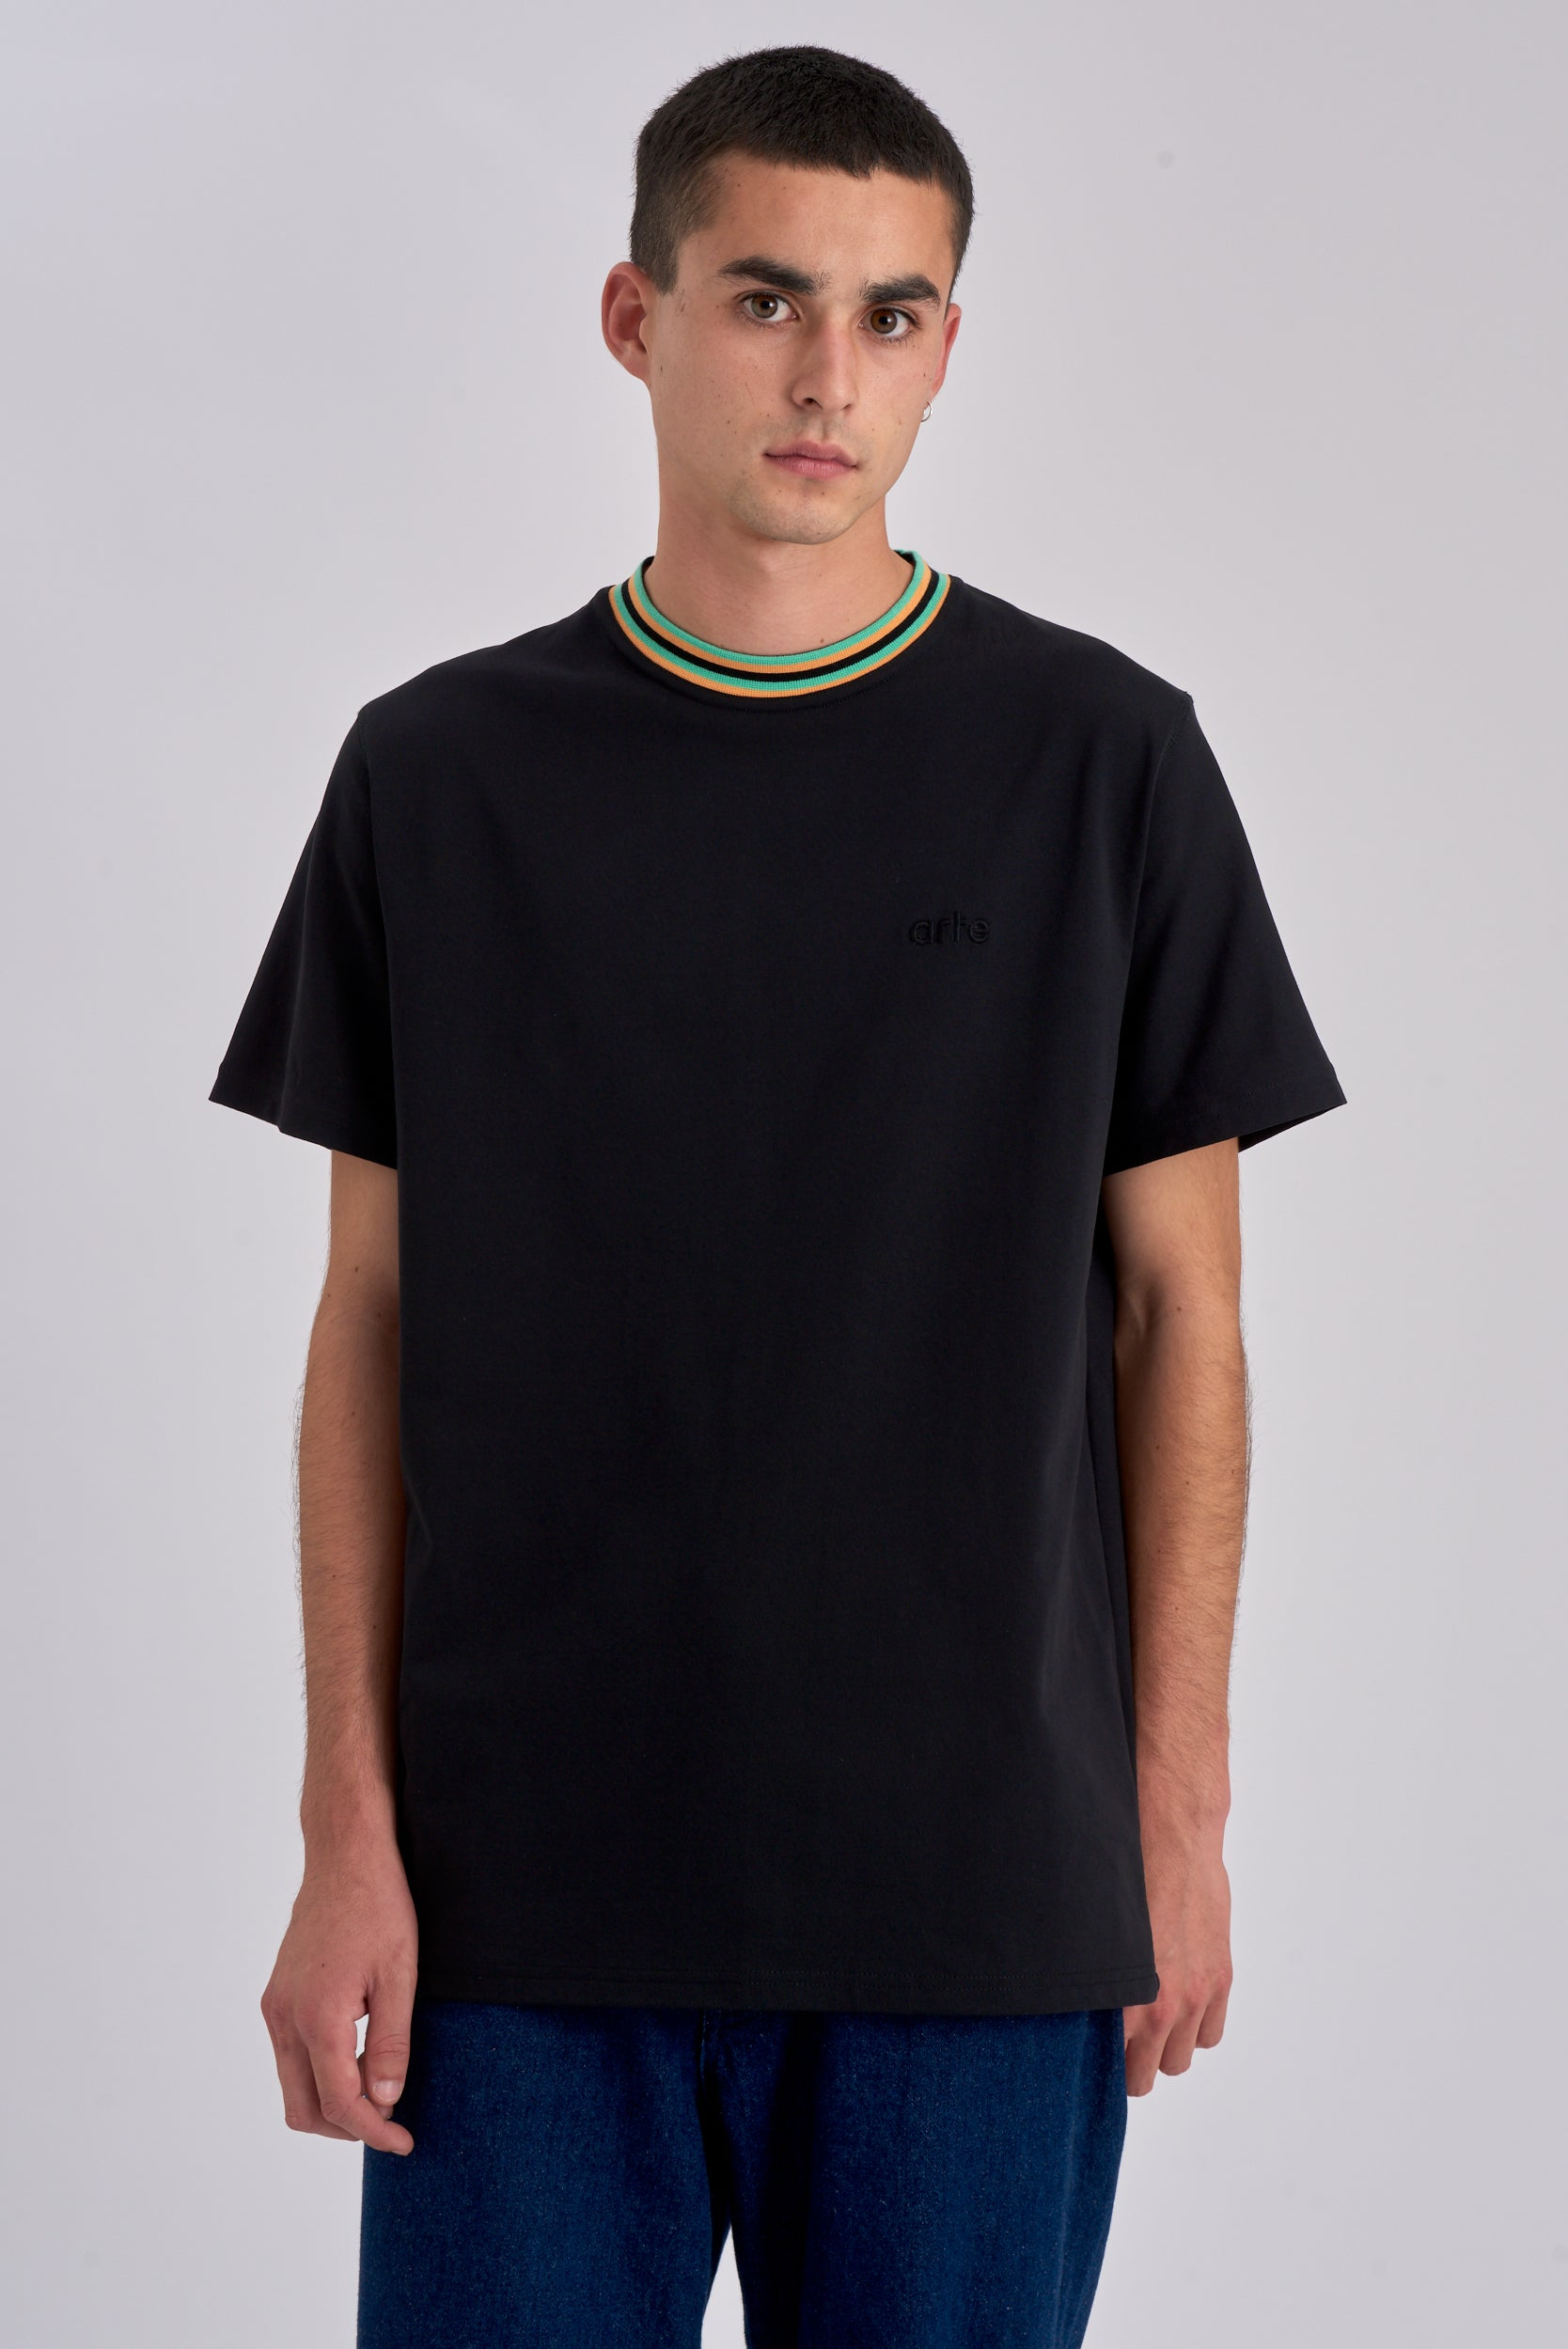 Tyler Collar Black T-shirt